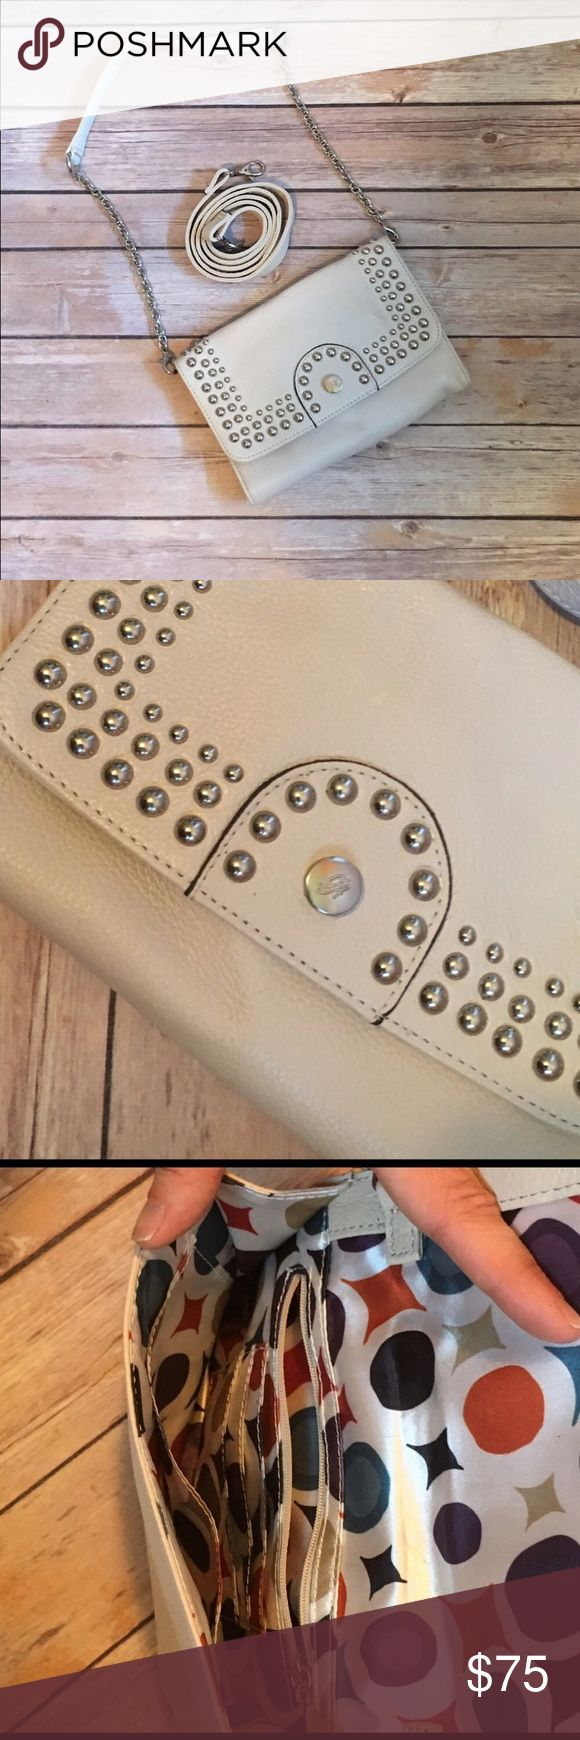 Grace Adèle Leather Cream Paige Clutch Genuine leather clutch. Used once or twice. EUC. Comes with two changeable straps. Can be used solo or with straps. Cream/off white color with silver accents Grace Adele Bags Clutches & Wristlets